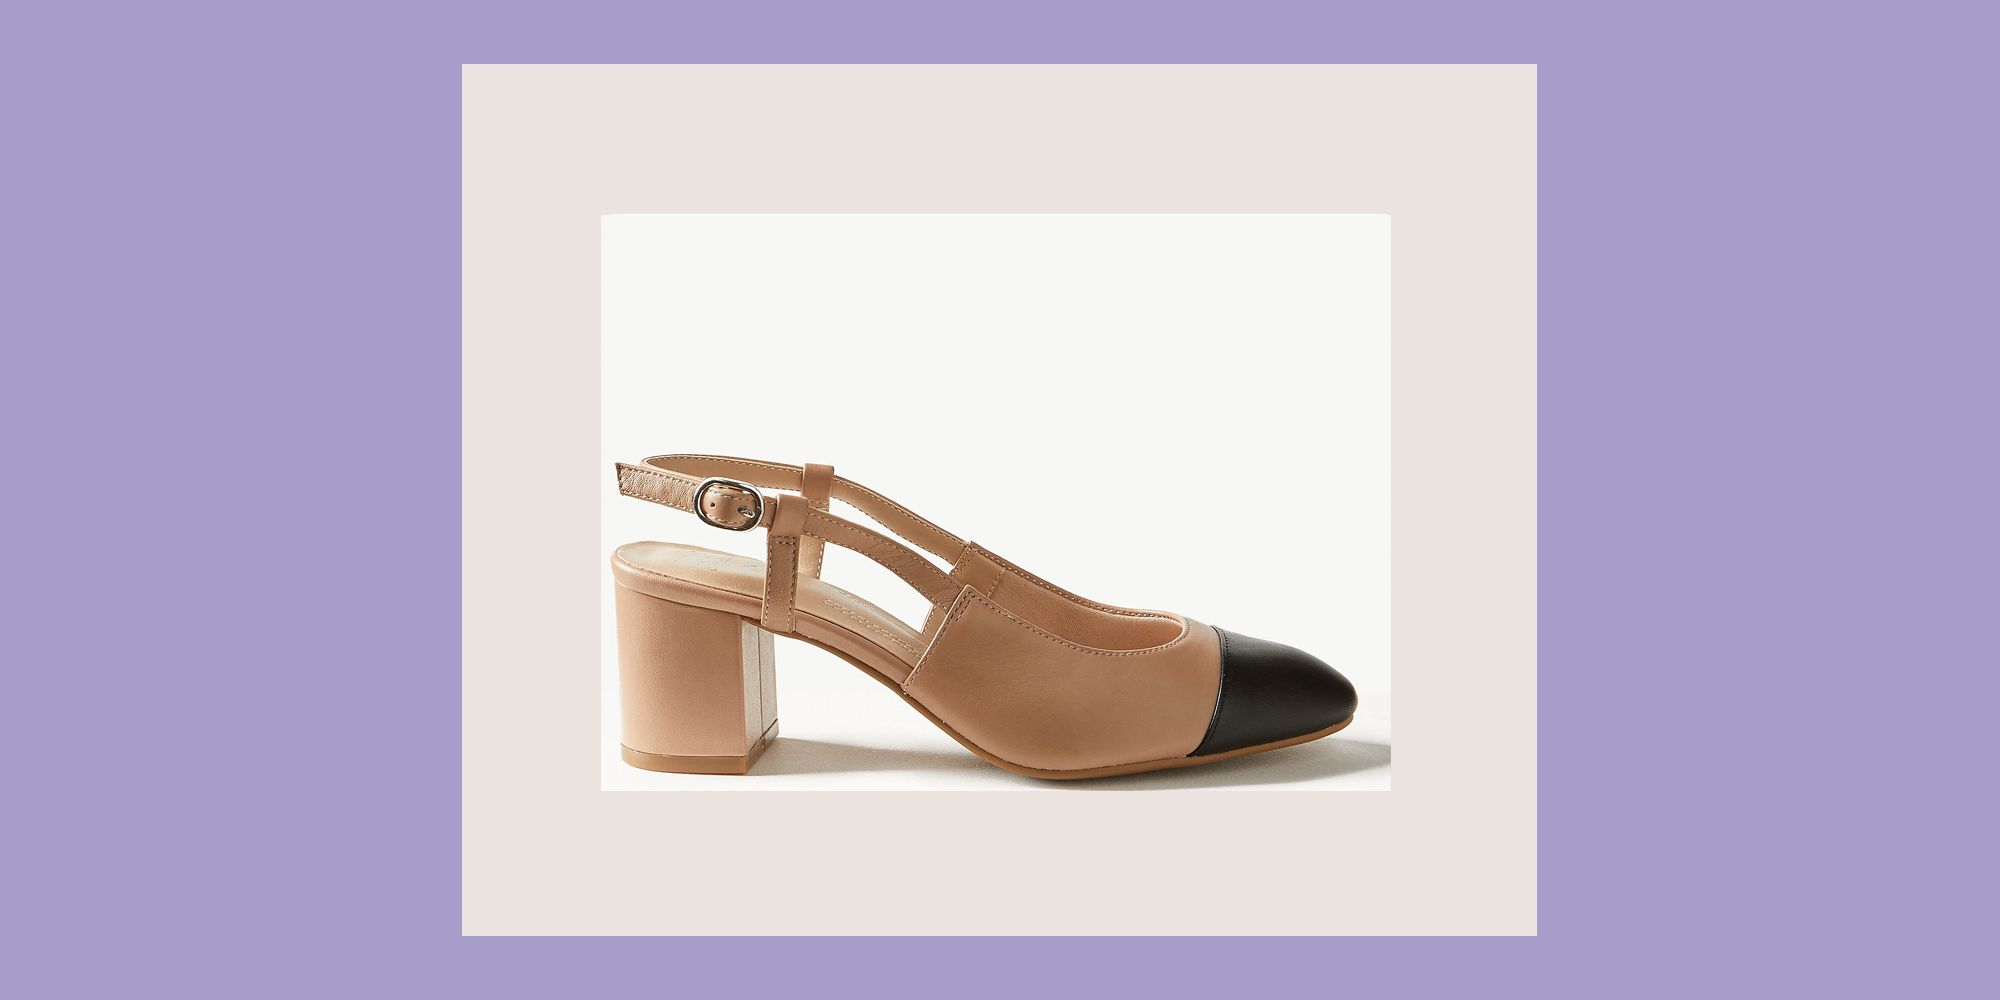 Marks & Spencer's sell-out beige and black slingback heels are back for spring